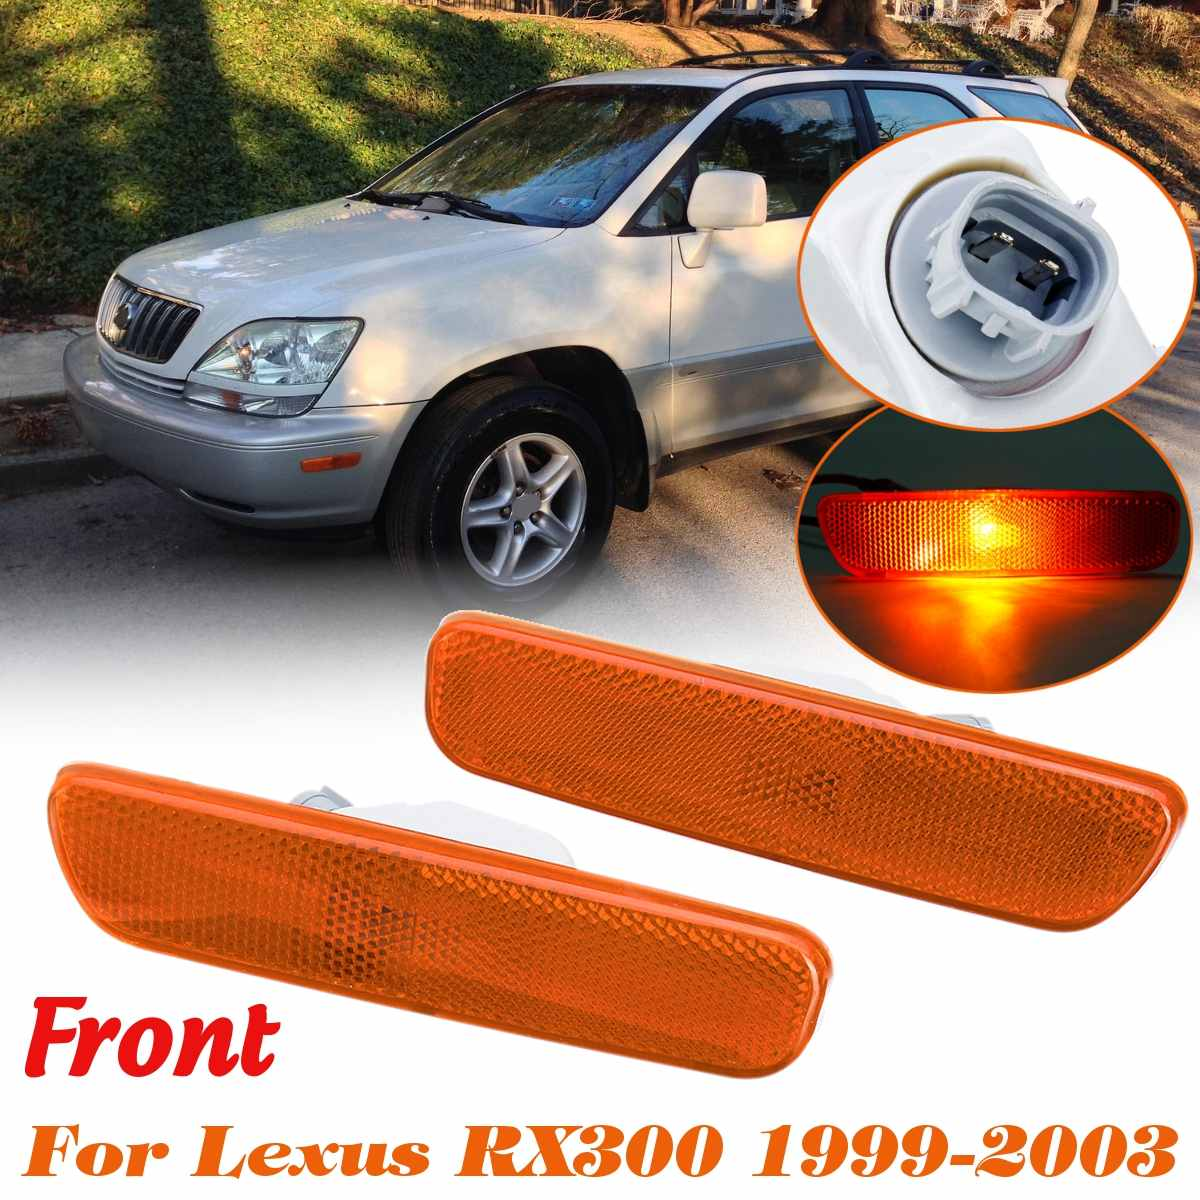 #81740-48010 For Lexus RX300 1999 2000 2001 2002 2003  Left/Right Front Bumper Side Marker Light Lamp